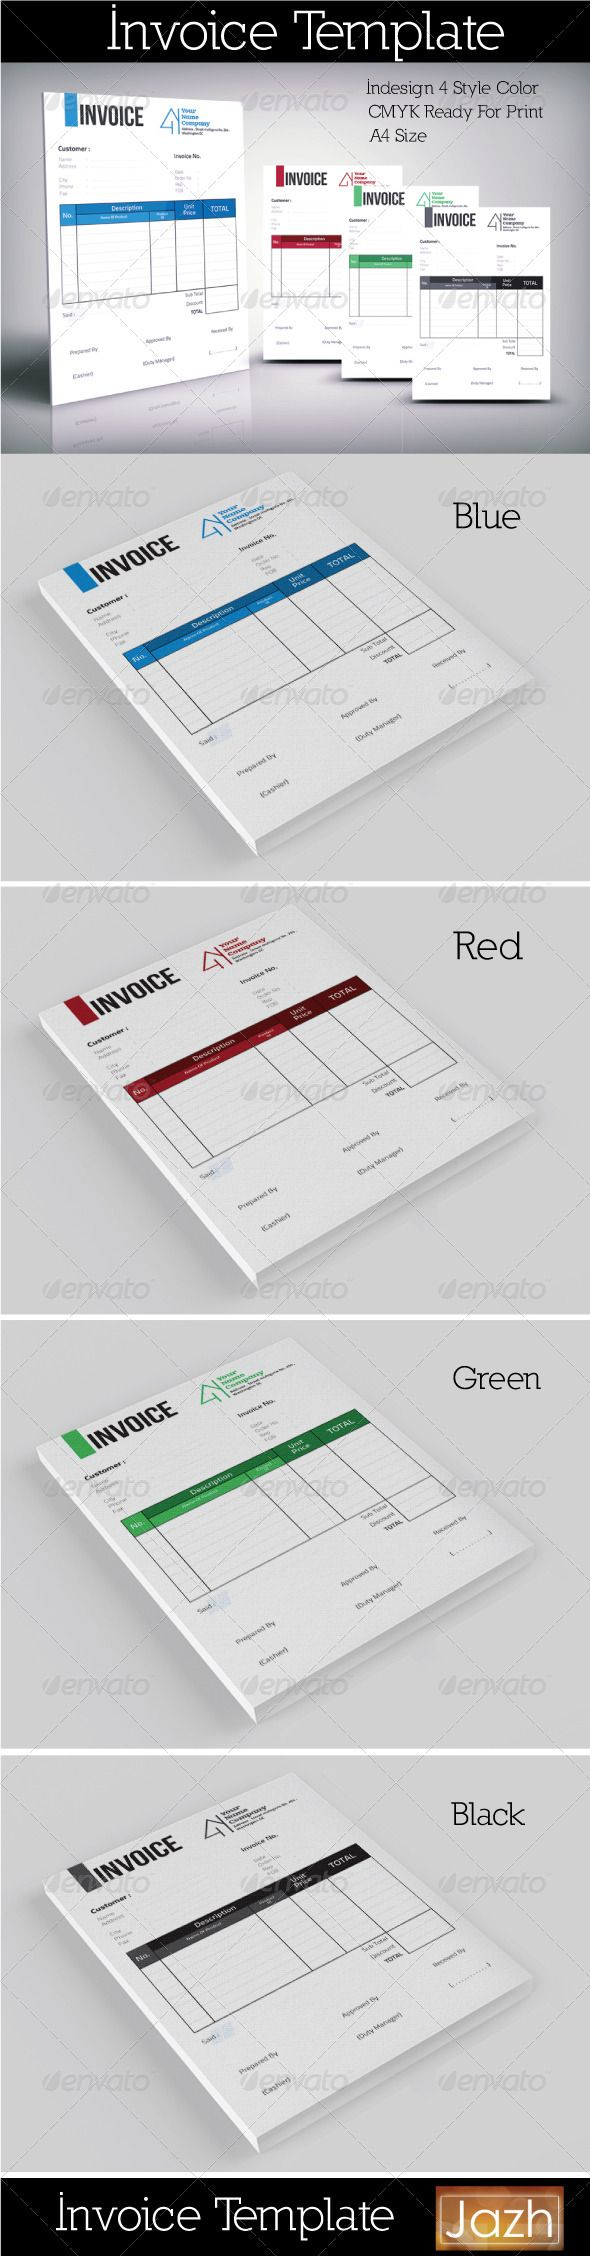 Invoice Template Clean  Template Clean Design And Proposal Templates